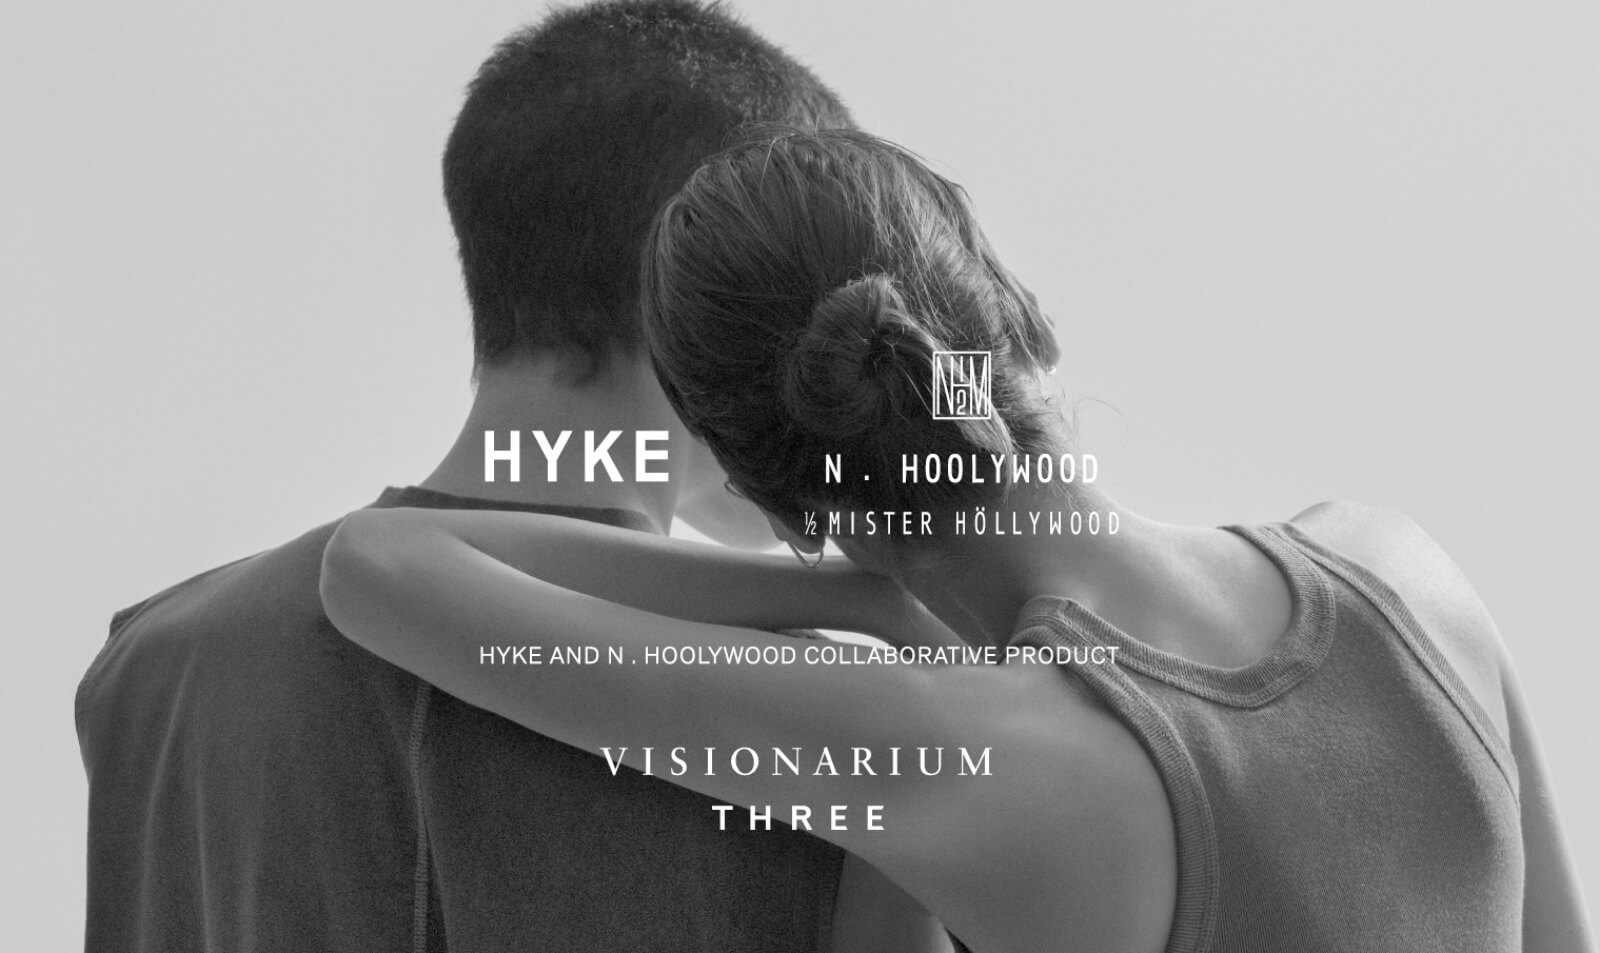 THREE × HYKE × N.HOOLYWOOD